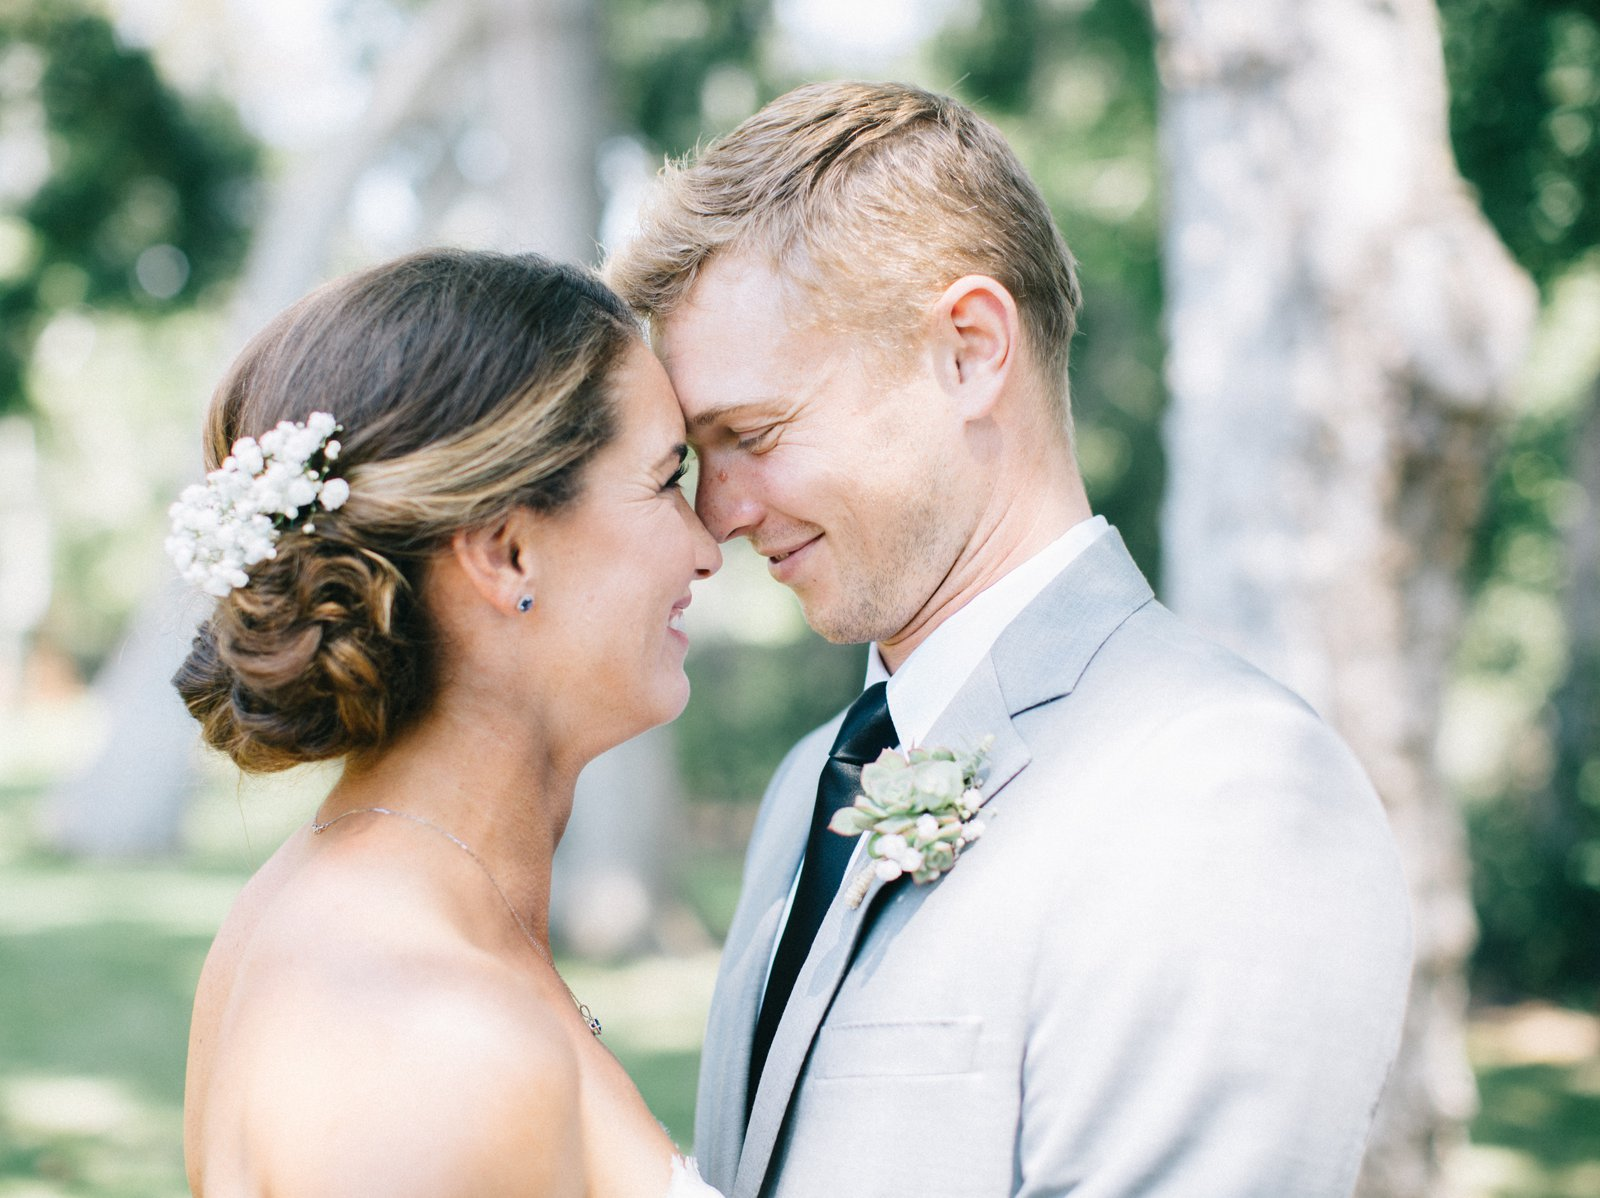 Bride & Groom at their beautiful Outdoor Carpinteria Wedding